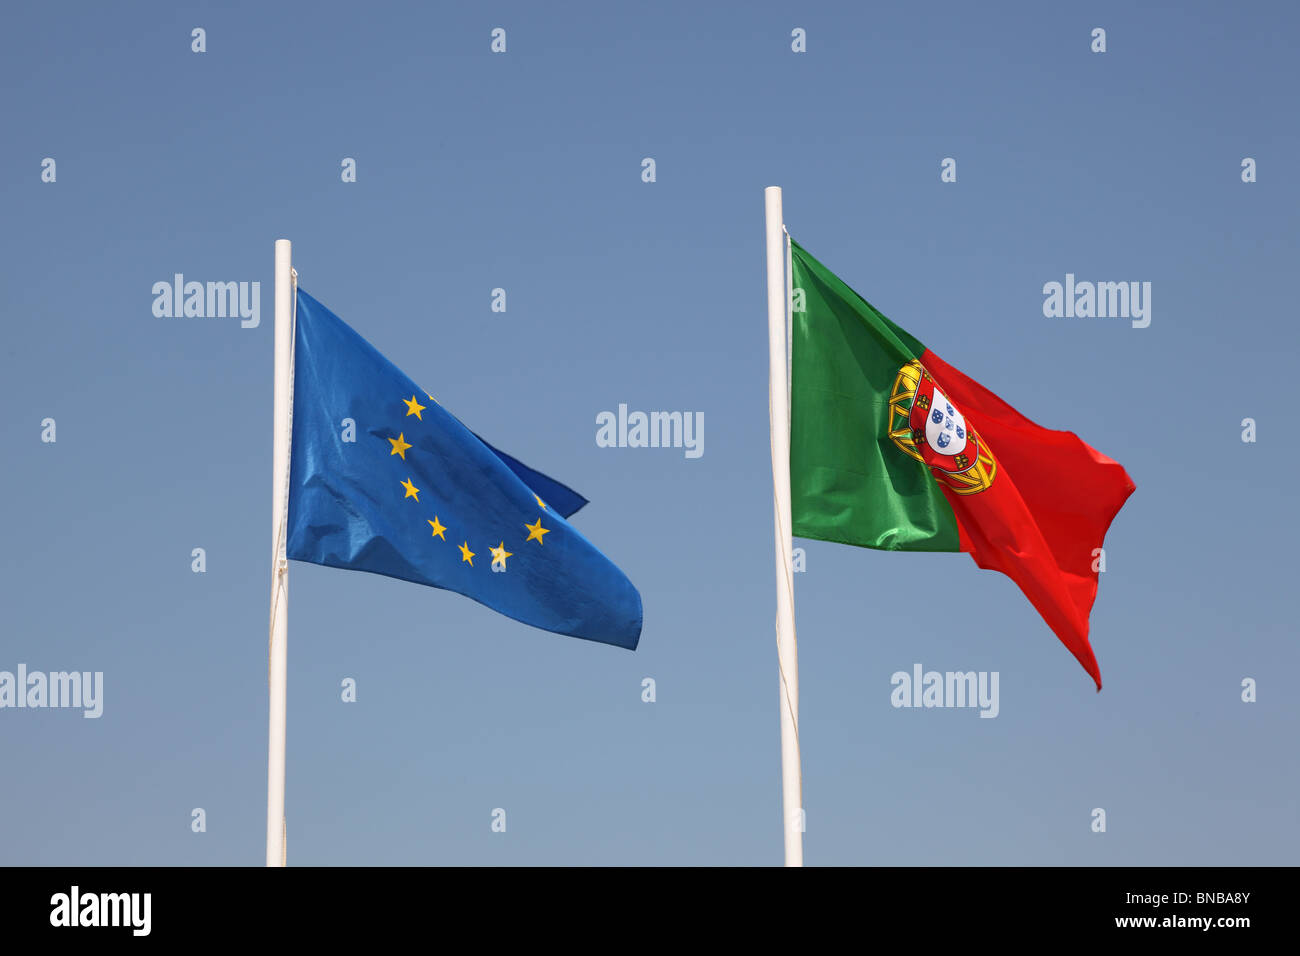 Portuguese and European flags against blue sky - Stock Image